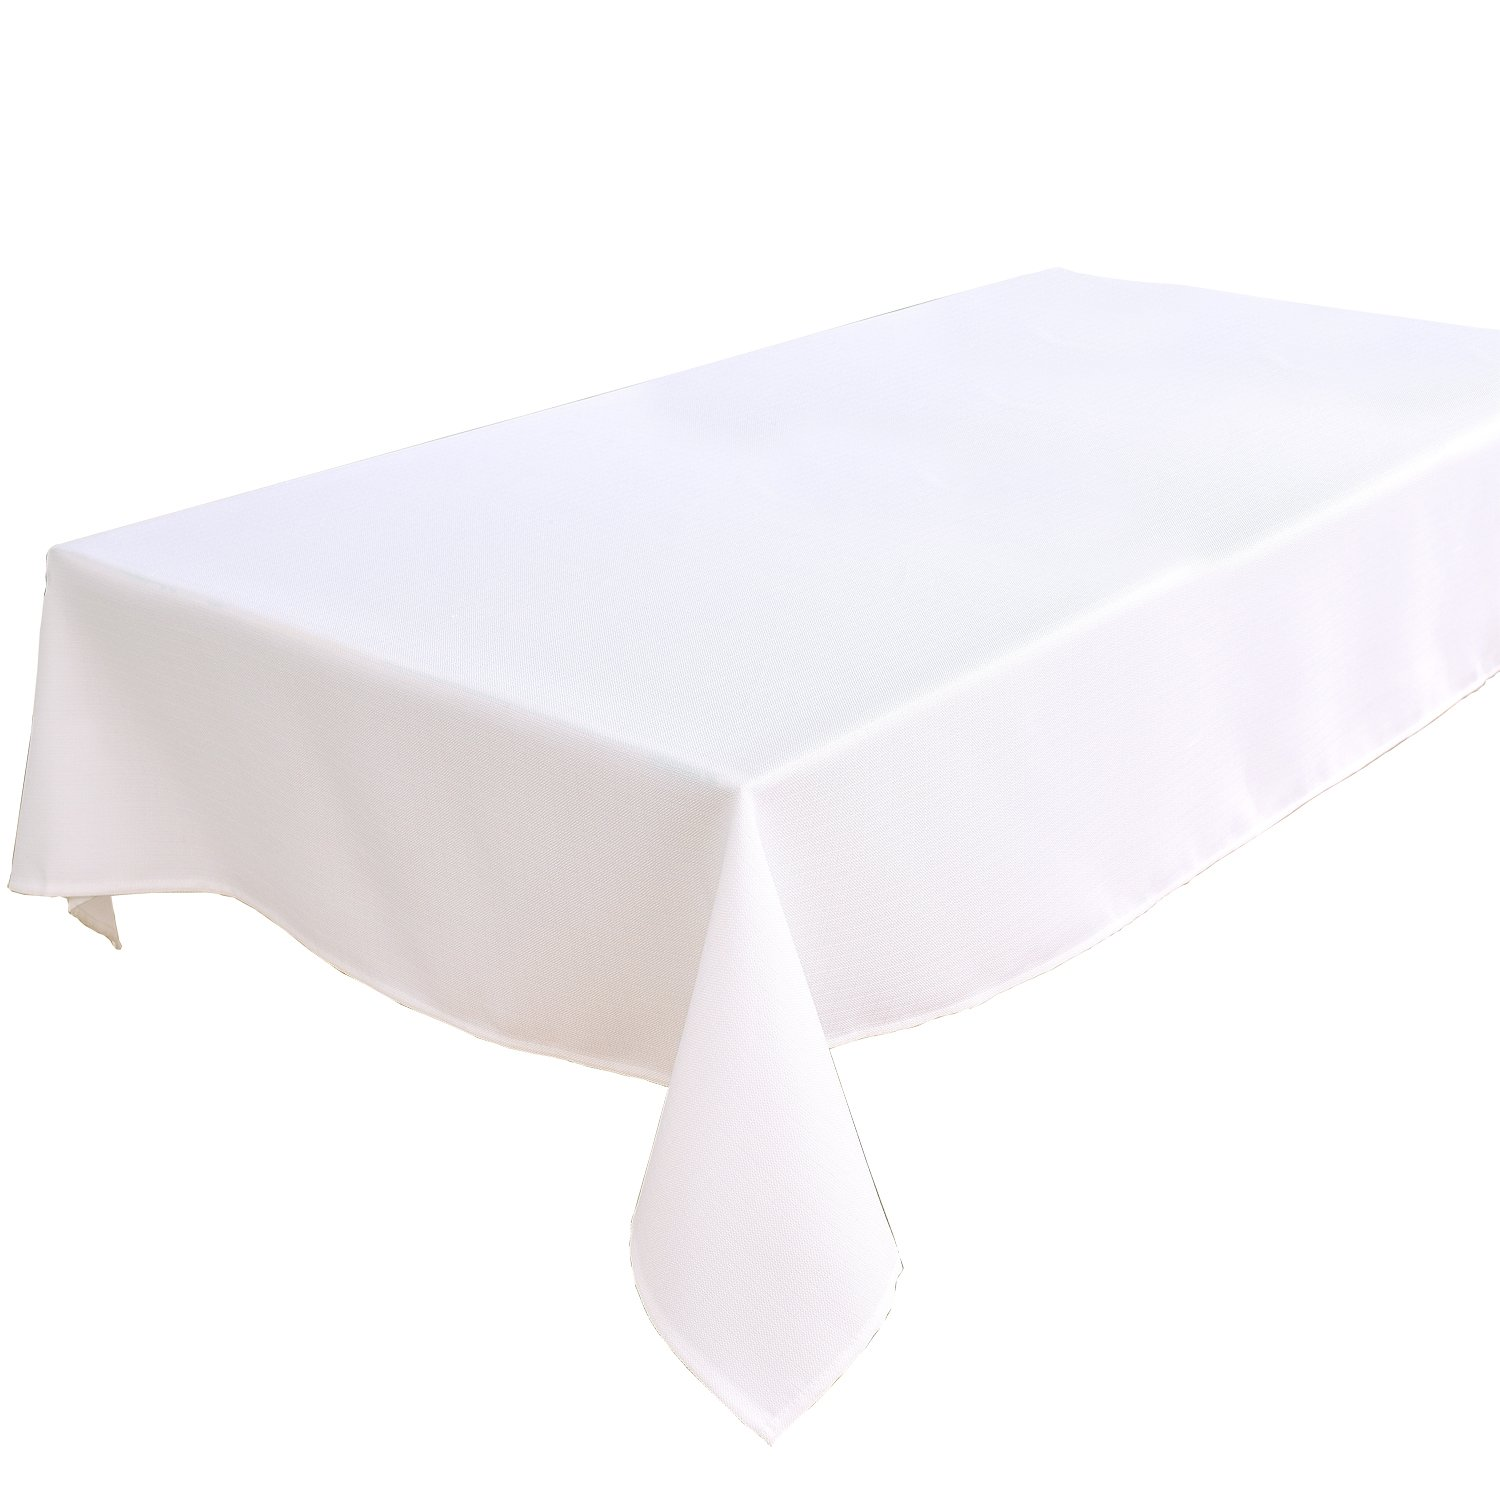 HIGHFLY Linen Rectangle Tablecloth 55 x 87-Inch Waterproof and Stain Resistant Natural Table cloth for Dining Room